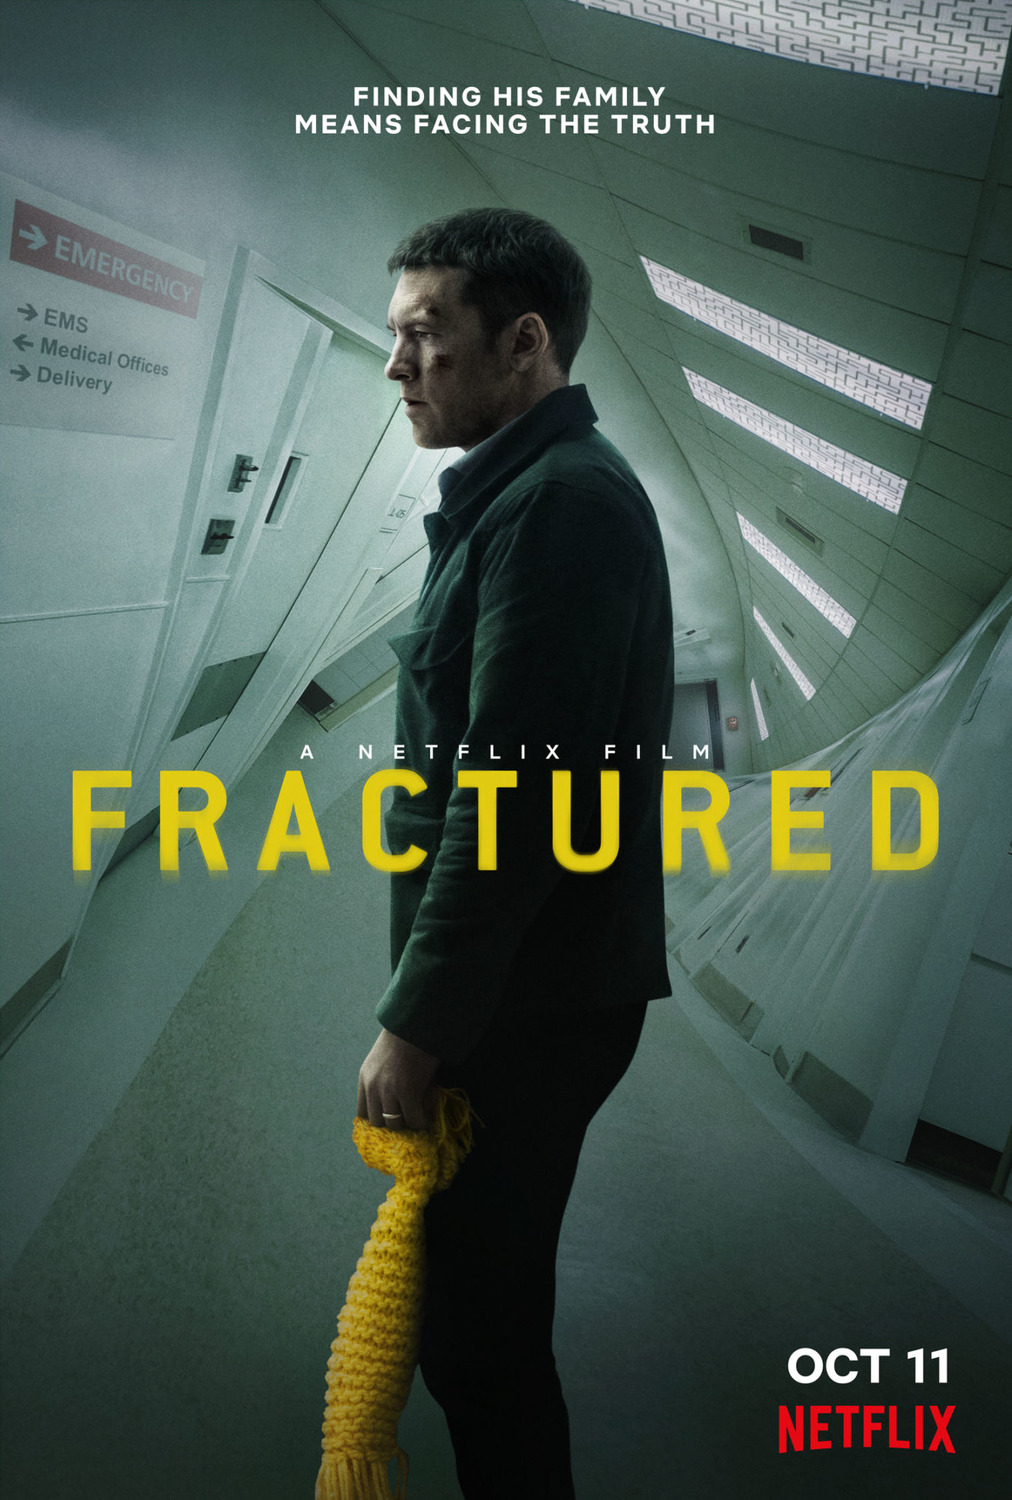 szmk_fractured_sam_worthington_netflix.jpg